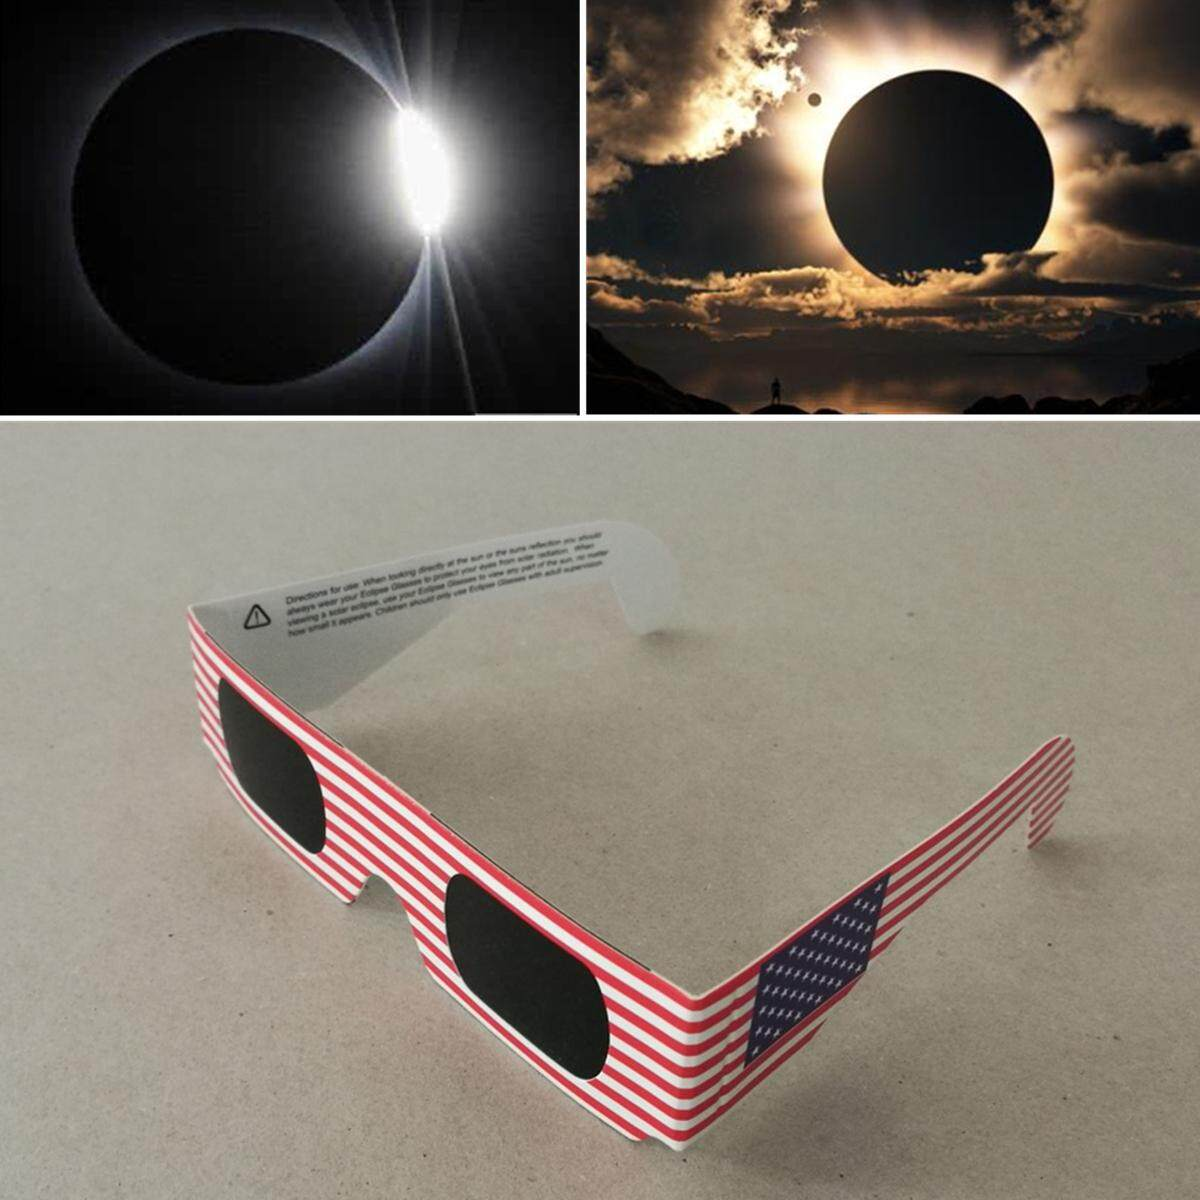 Chic Professional Solar Eclipse Glasses Premium Quality Safety Observation Tool